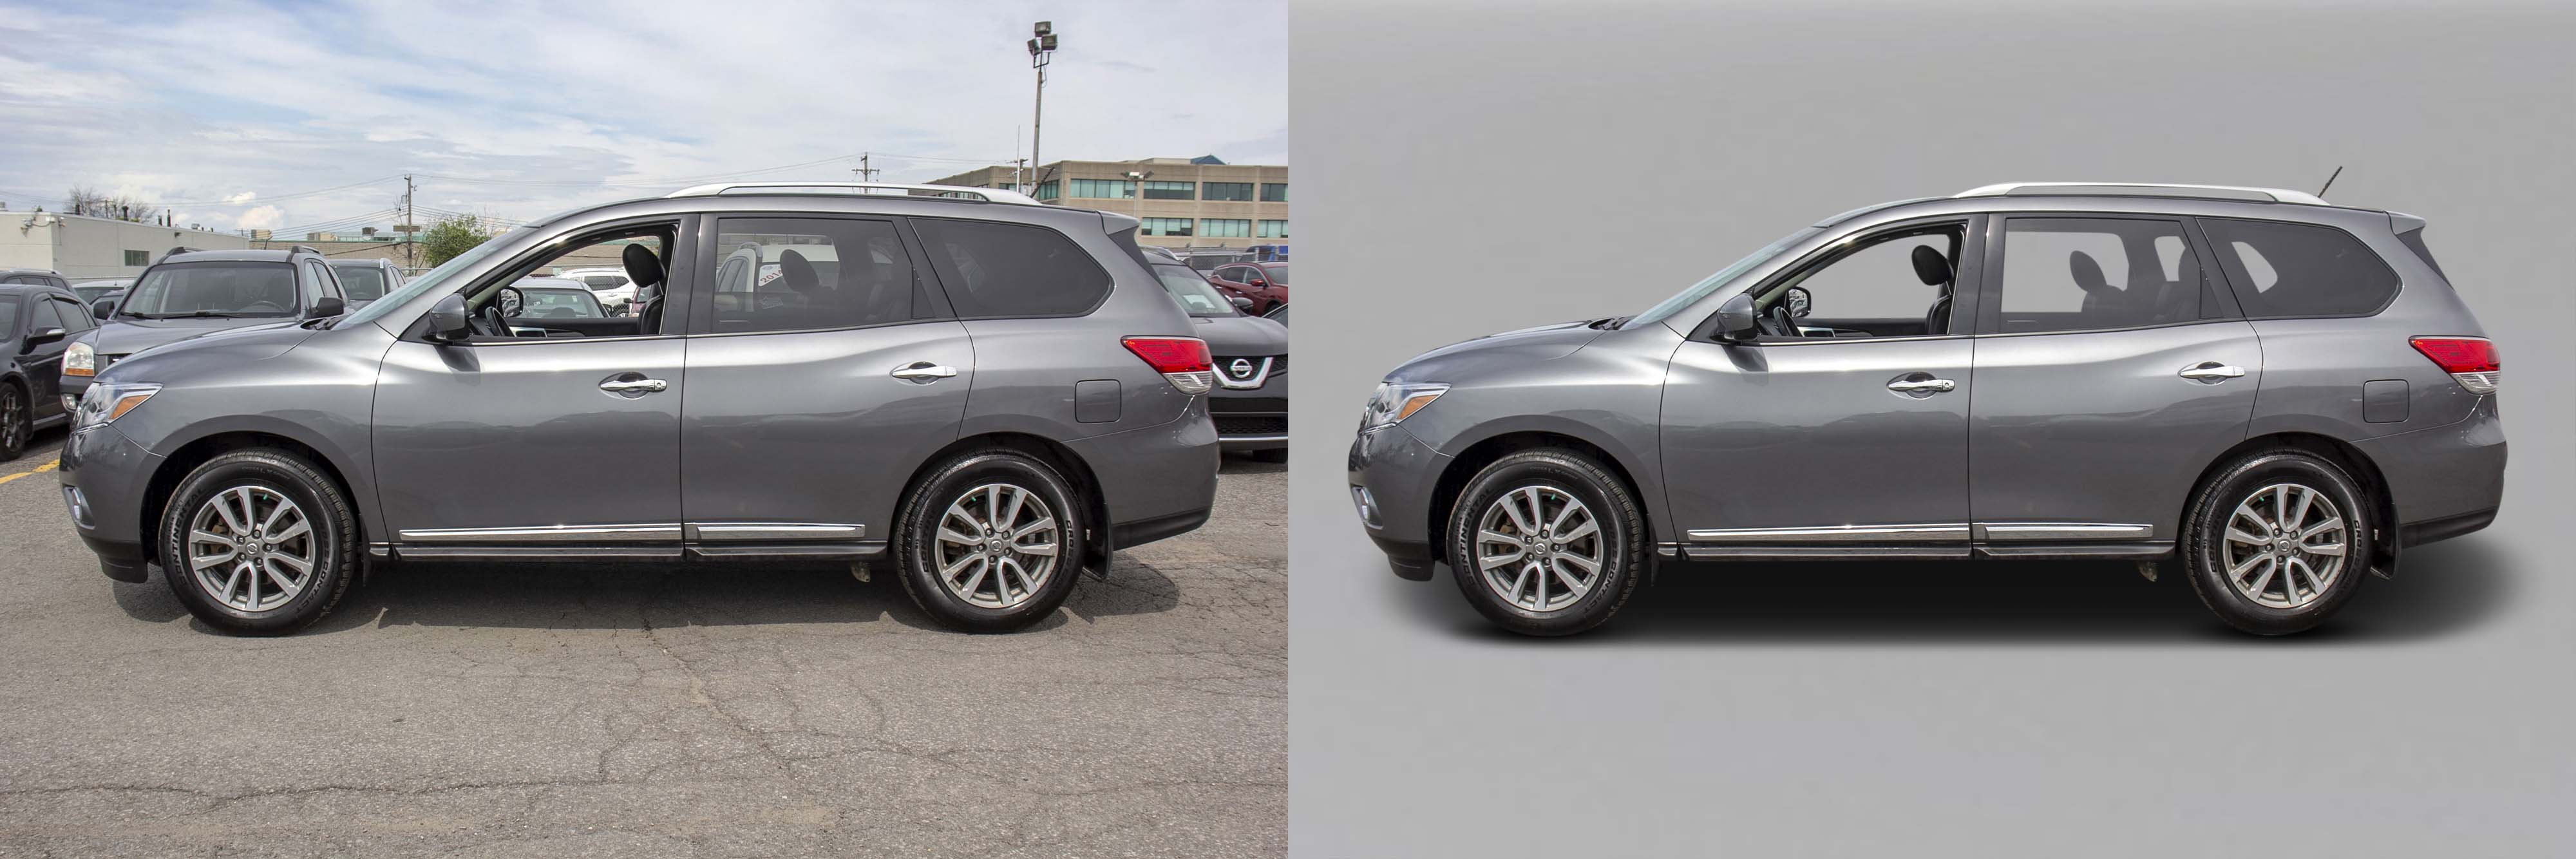 car images editing services